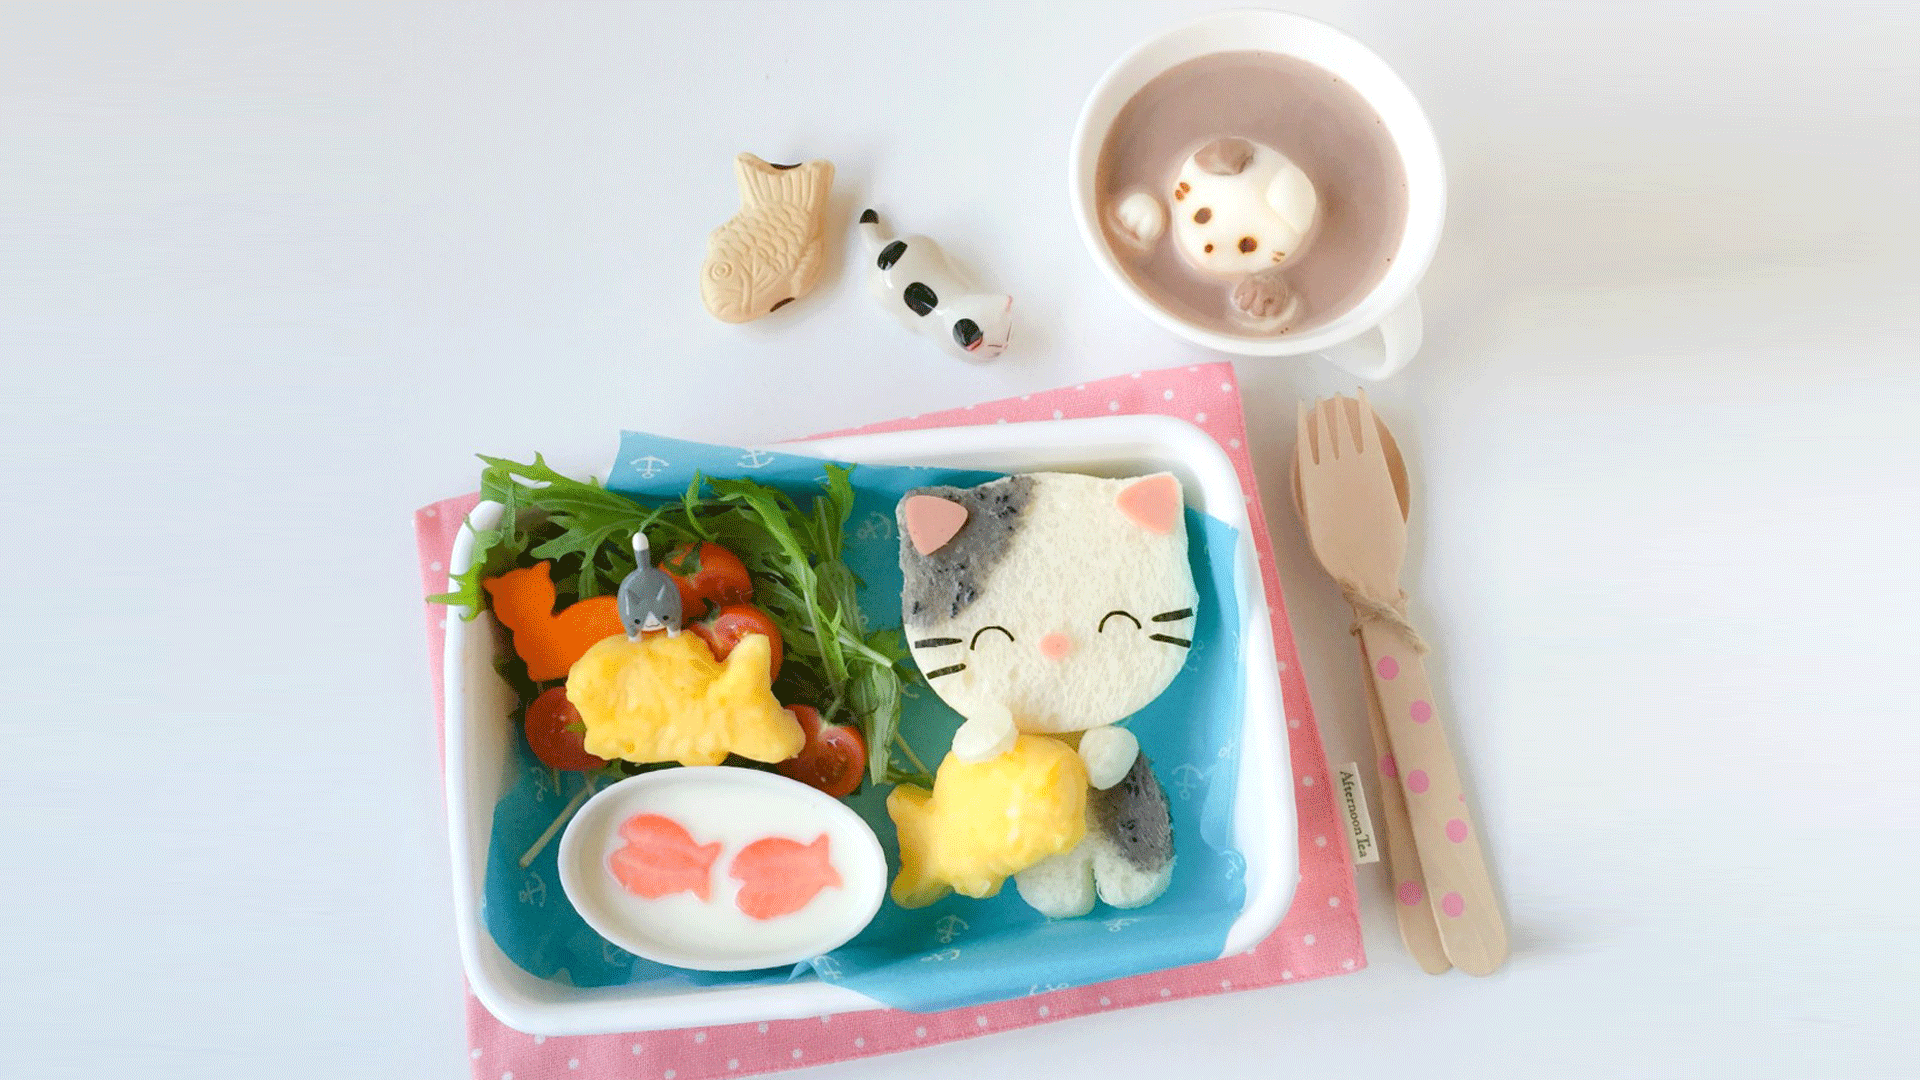 Kawaii Lunch Wallpapers Top Free Kawaii Lunch